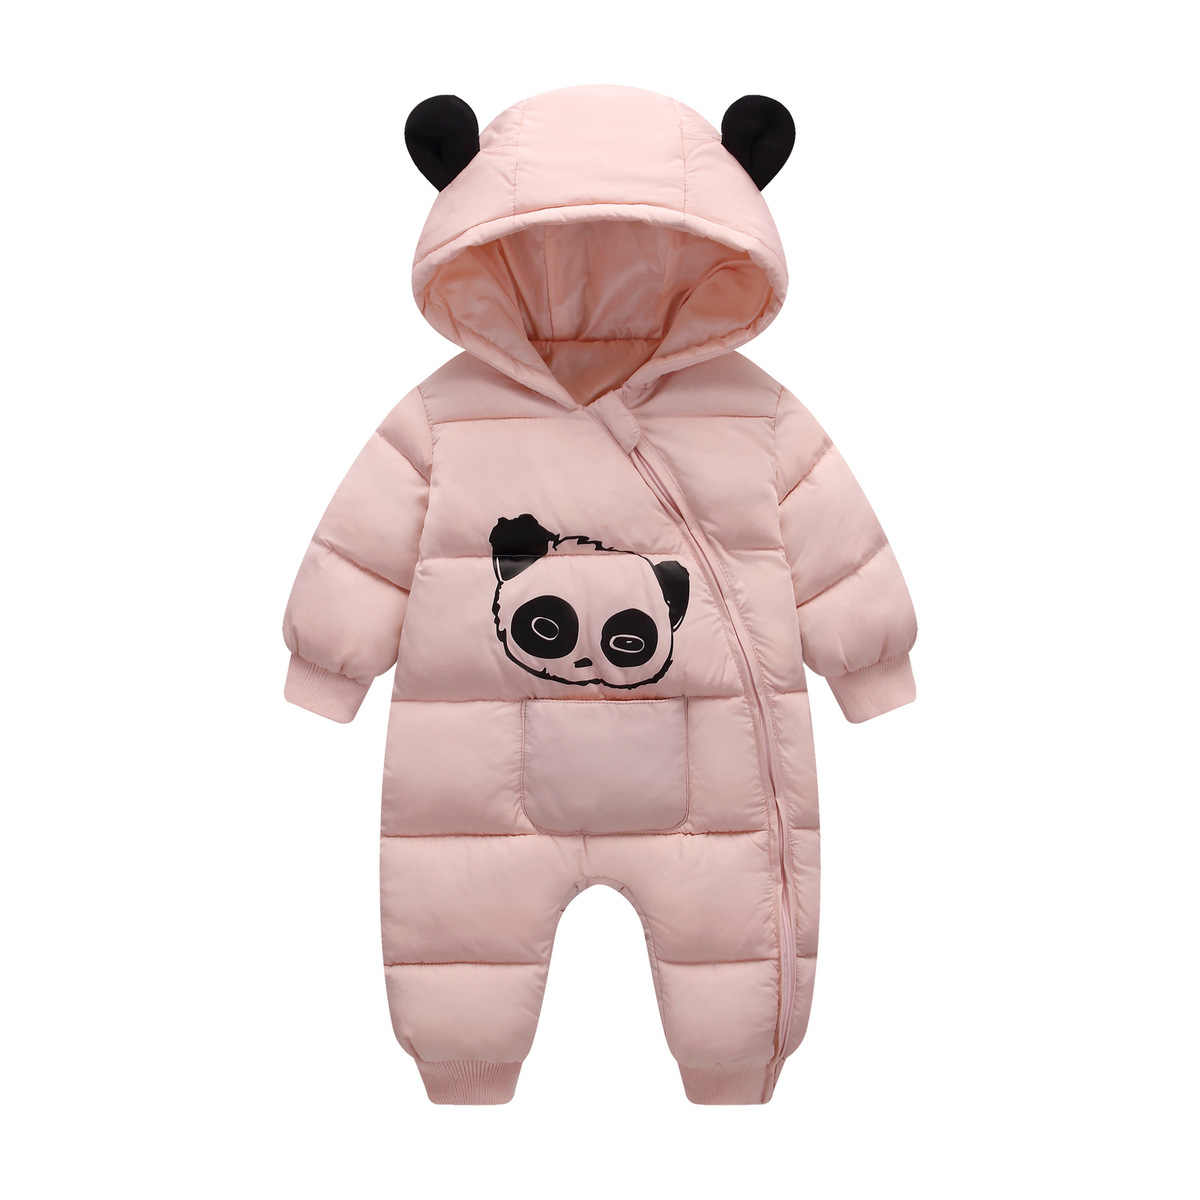 65e6f44ea083 ... Baby boy girl Clothes 2018 New born Winter Hooded Rompers Thick Cotton  Outfit Newborn Jumpsuit Children ...